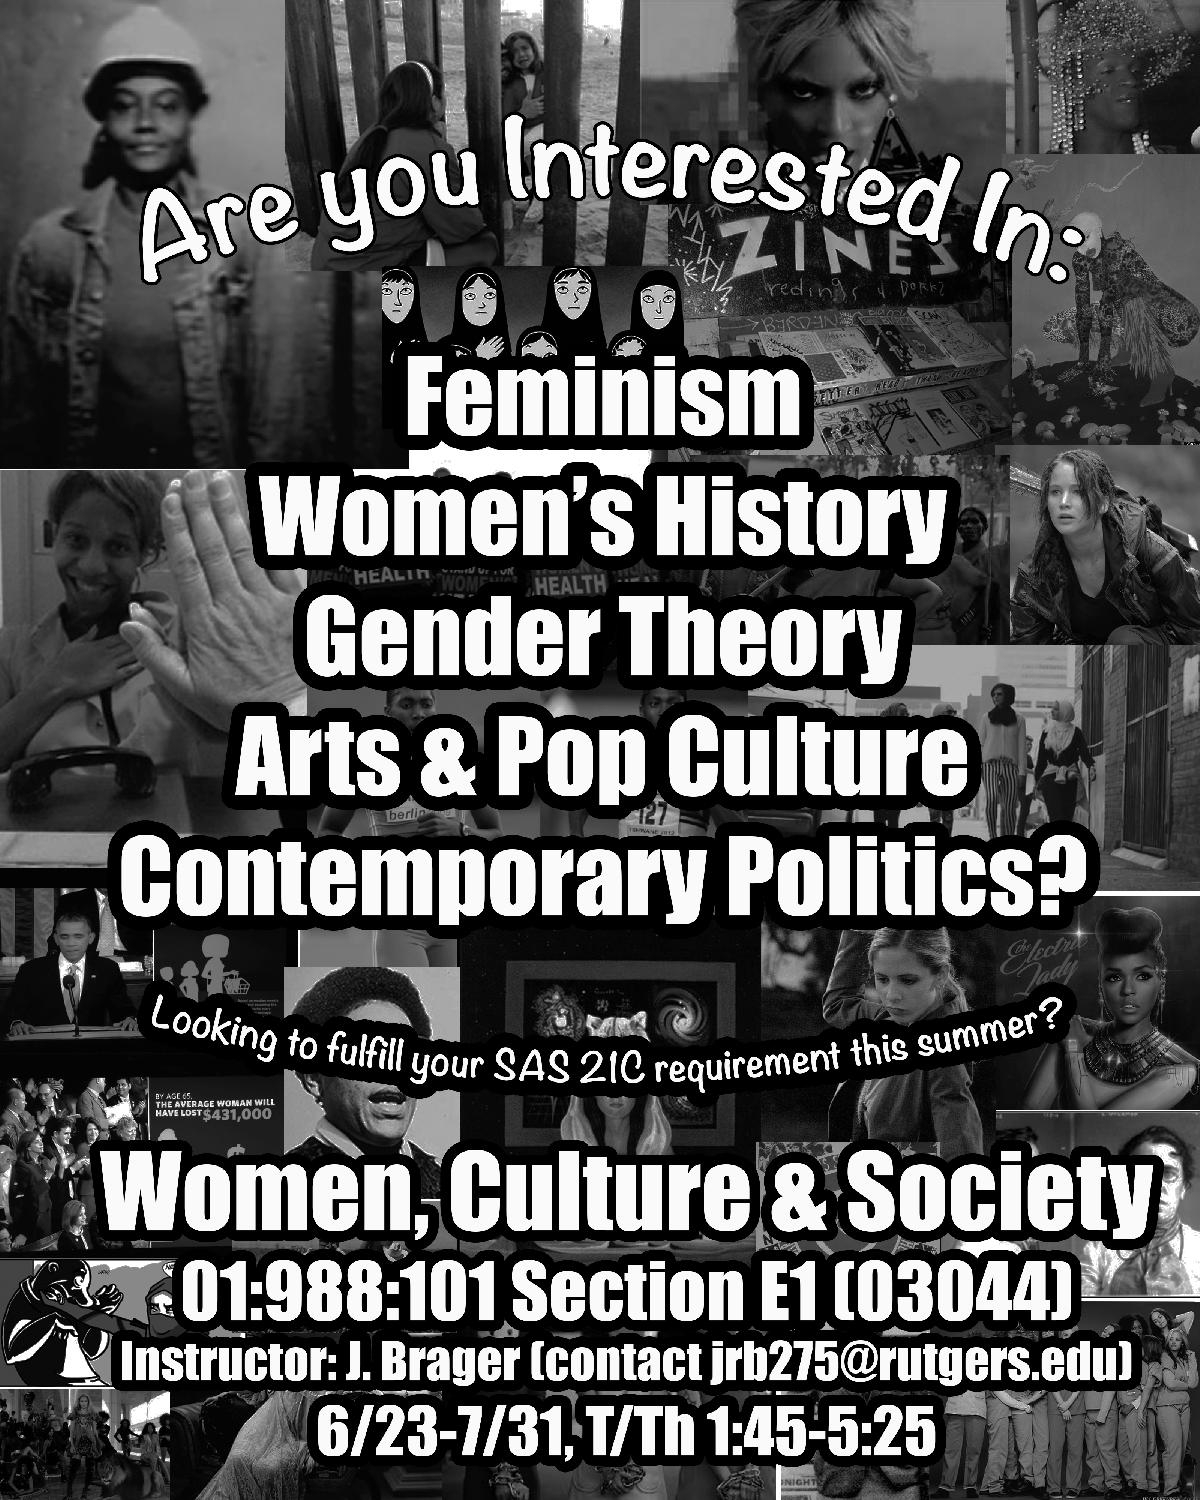 What topic should I do for my research paper in Feminist Studies?